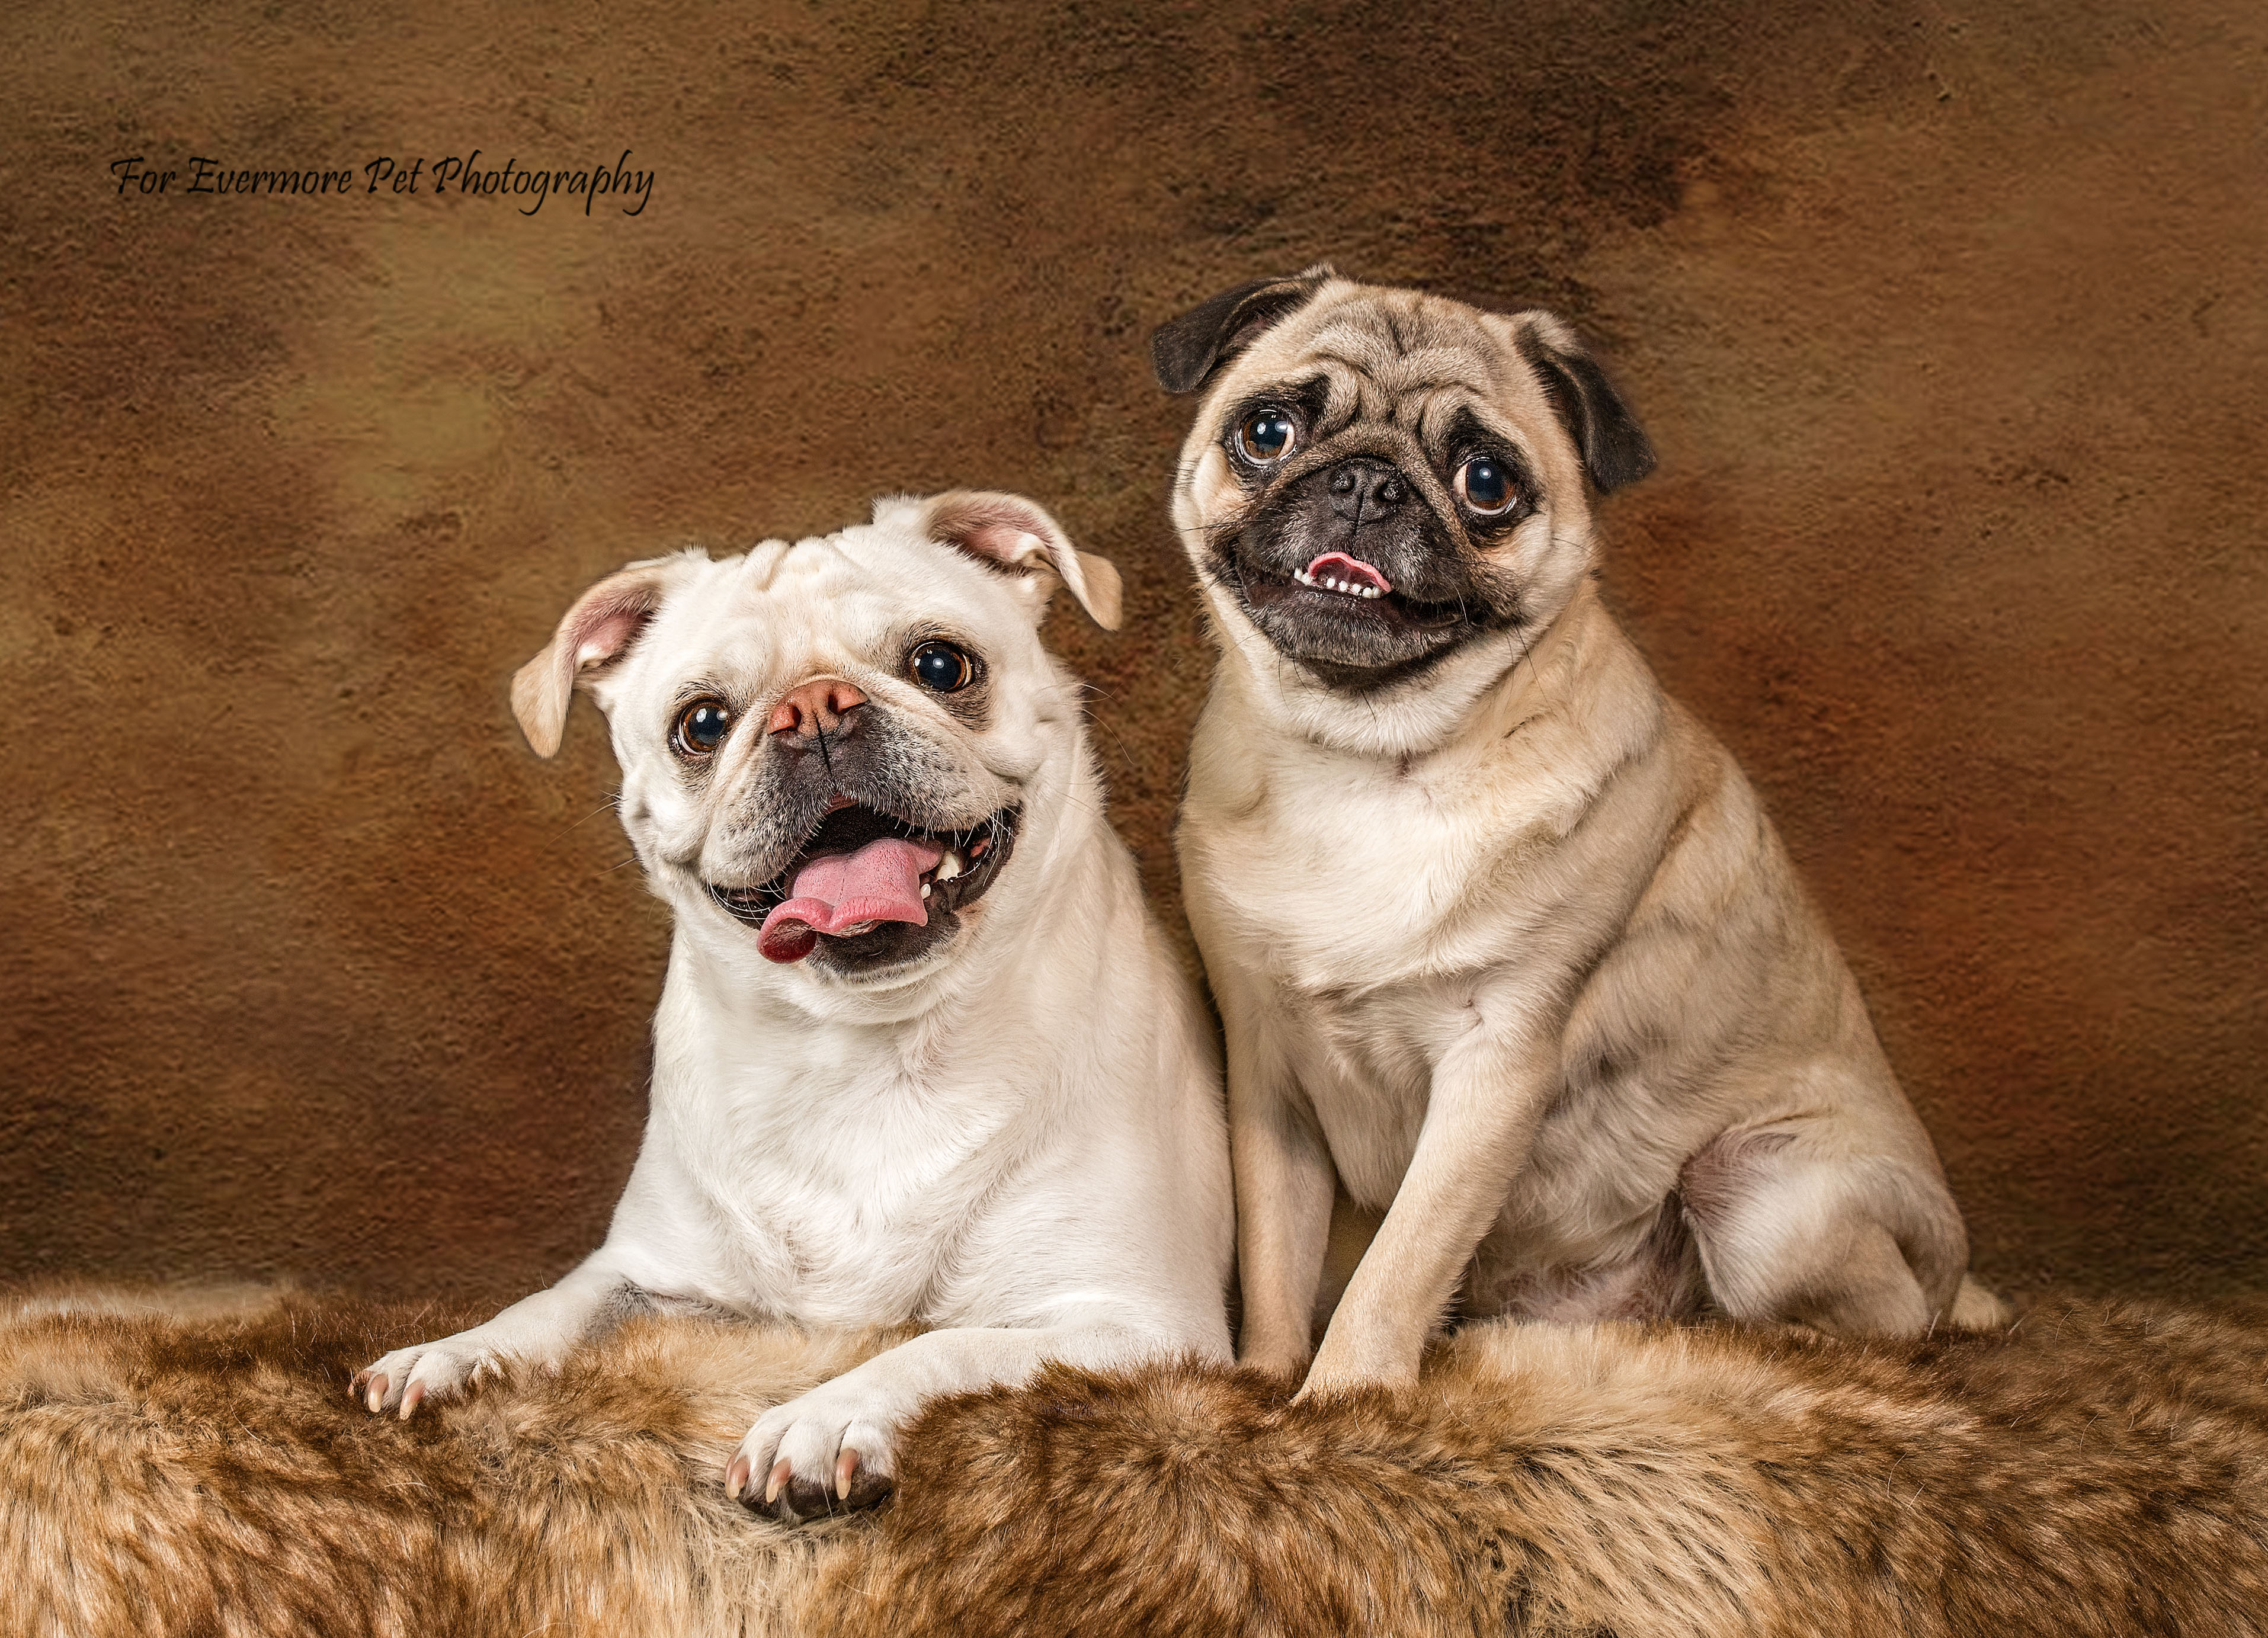 Benny and Bailey the Pugs